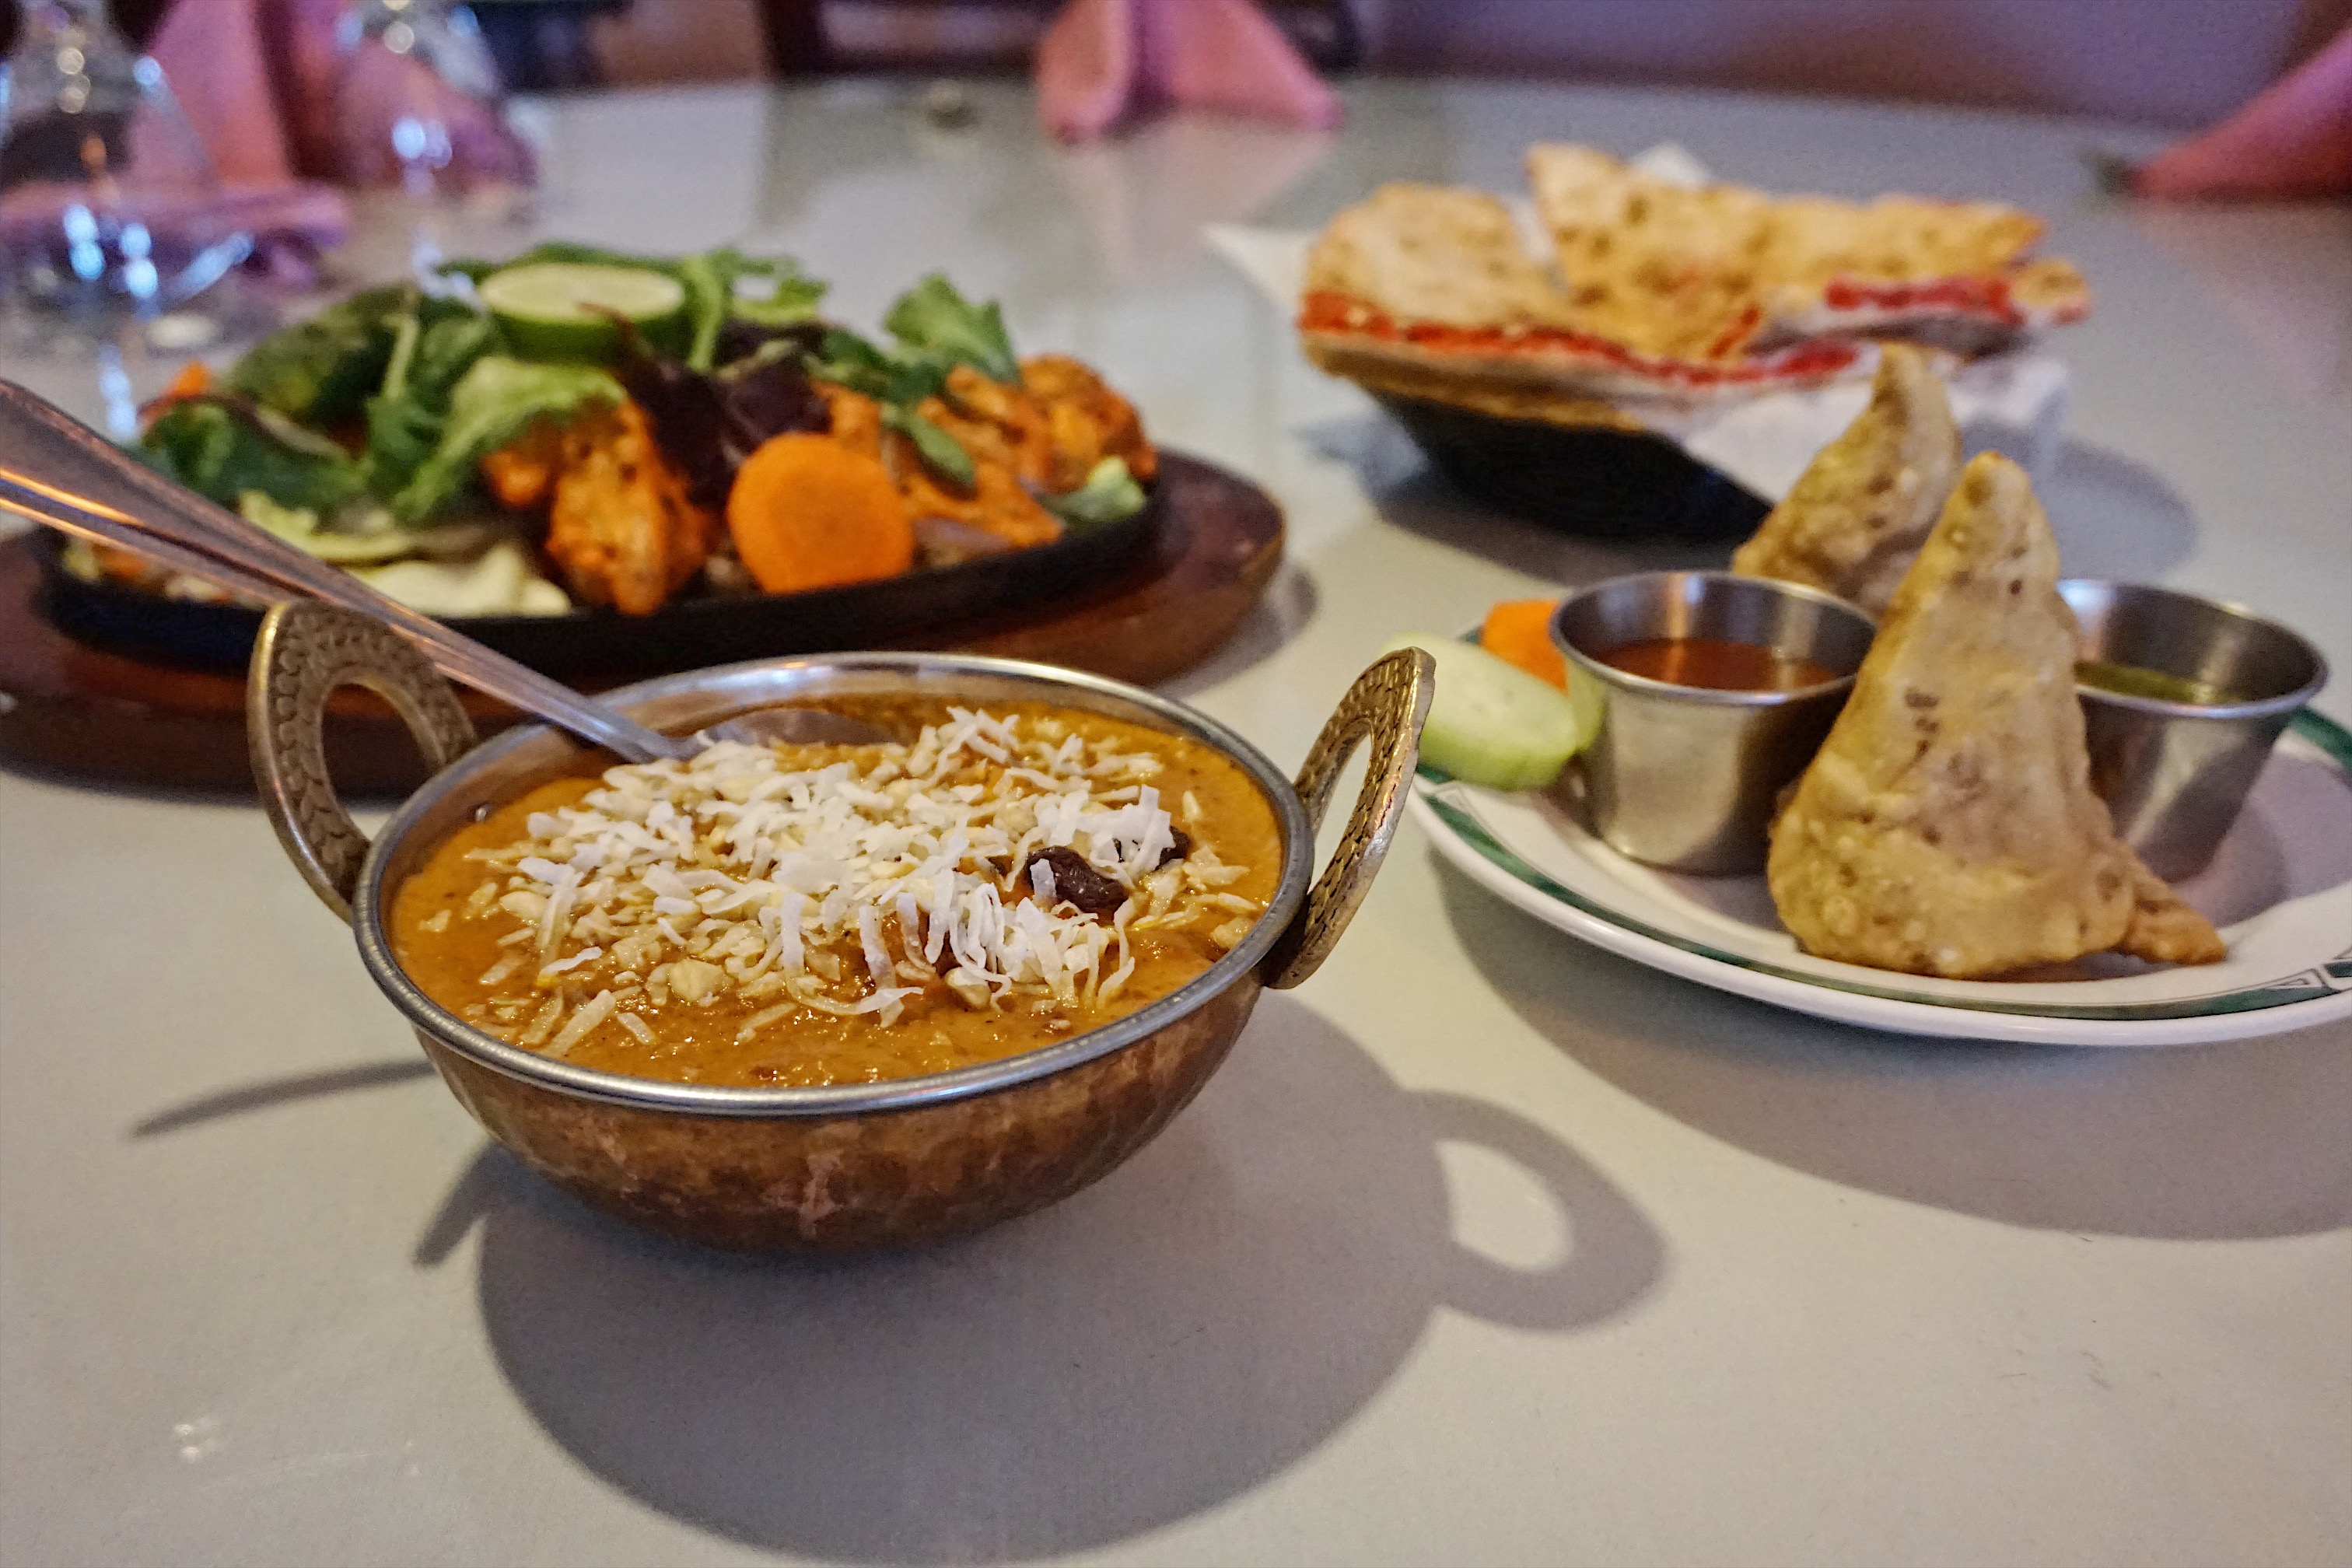 Himalayan Restaurant Serving Authentic Nepalese Food In Encinitas Ca Ync